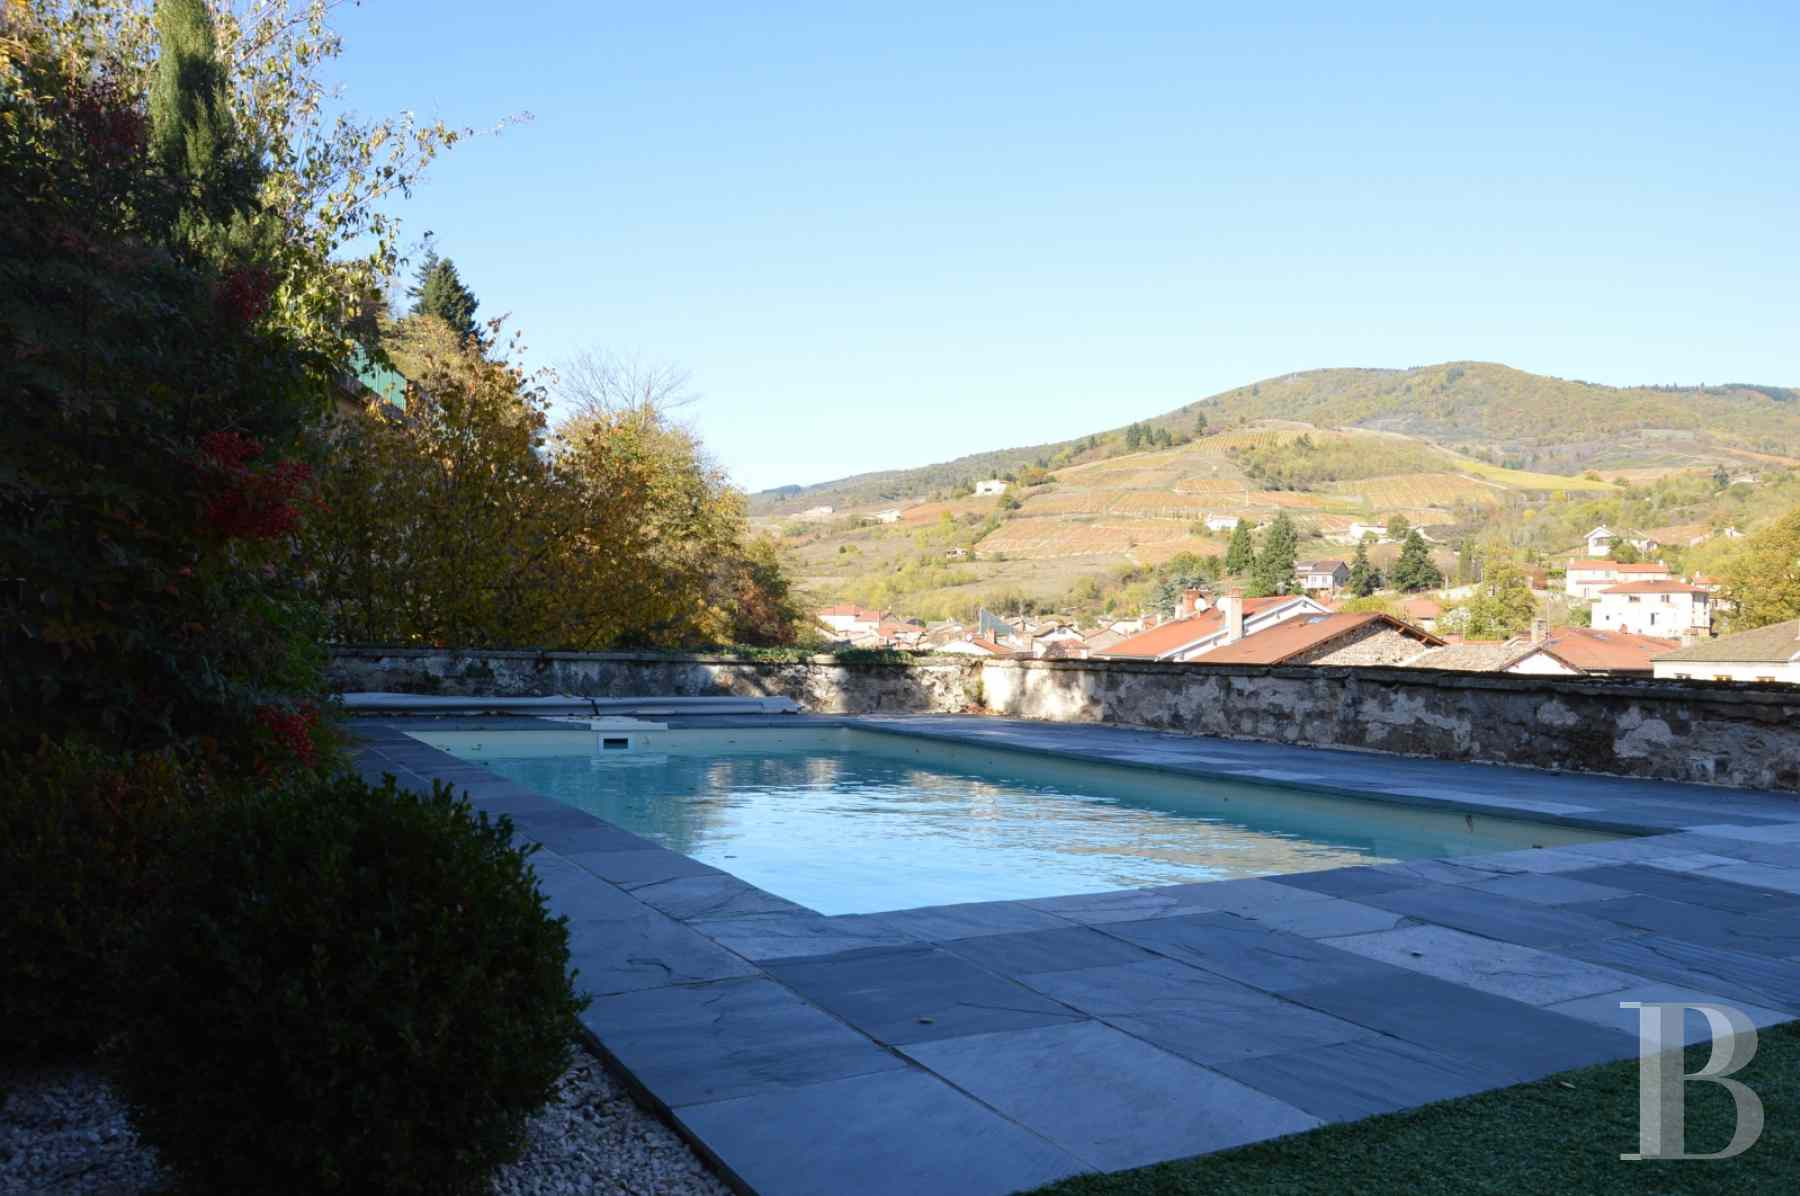 property for sale France rhones alps residence beaujolais - 11 zoom